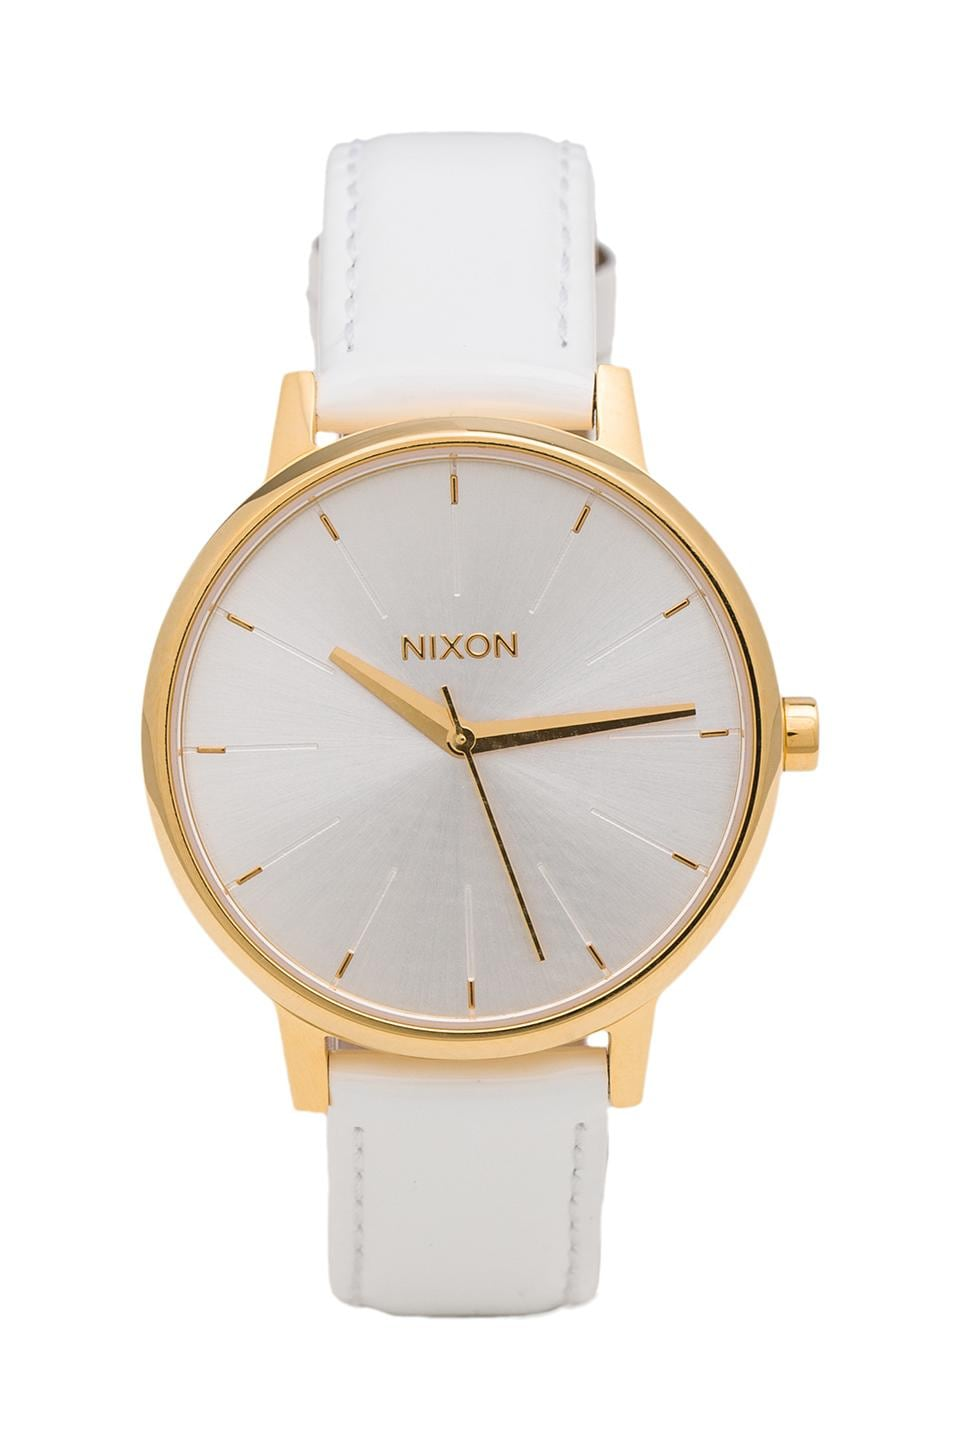 Nixon The Kensington Leather in All White & Gold Patent